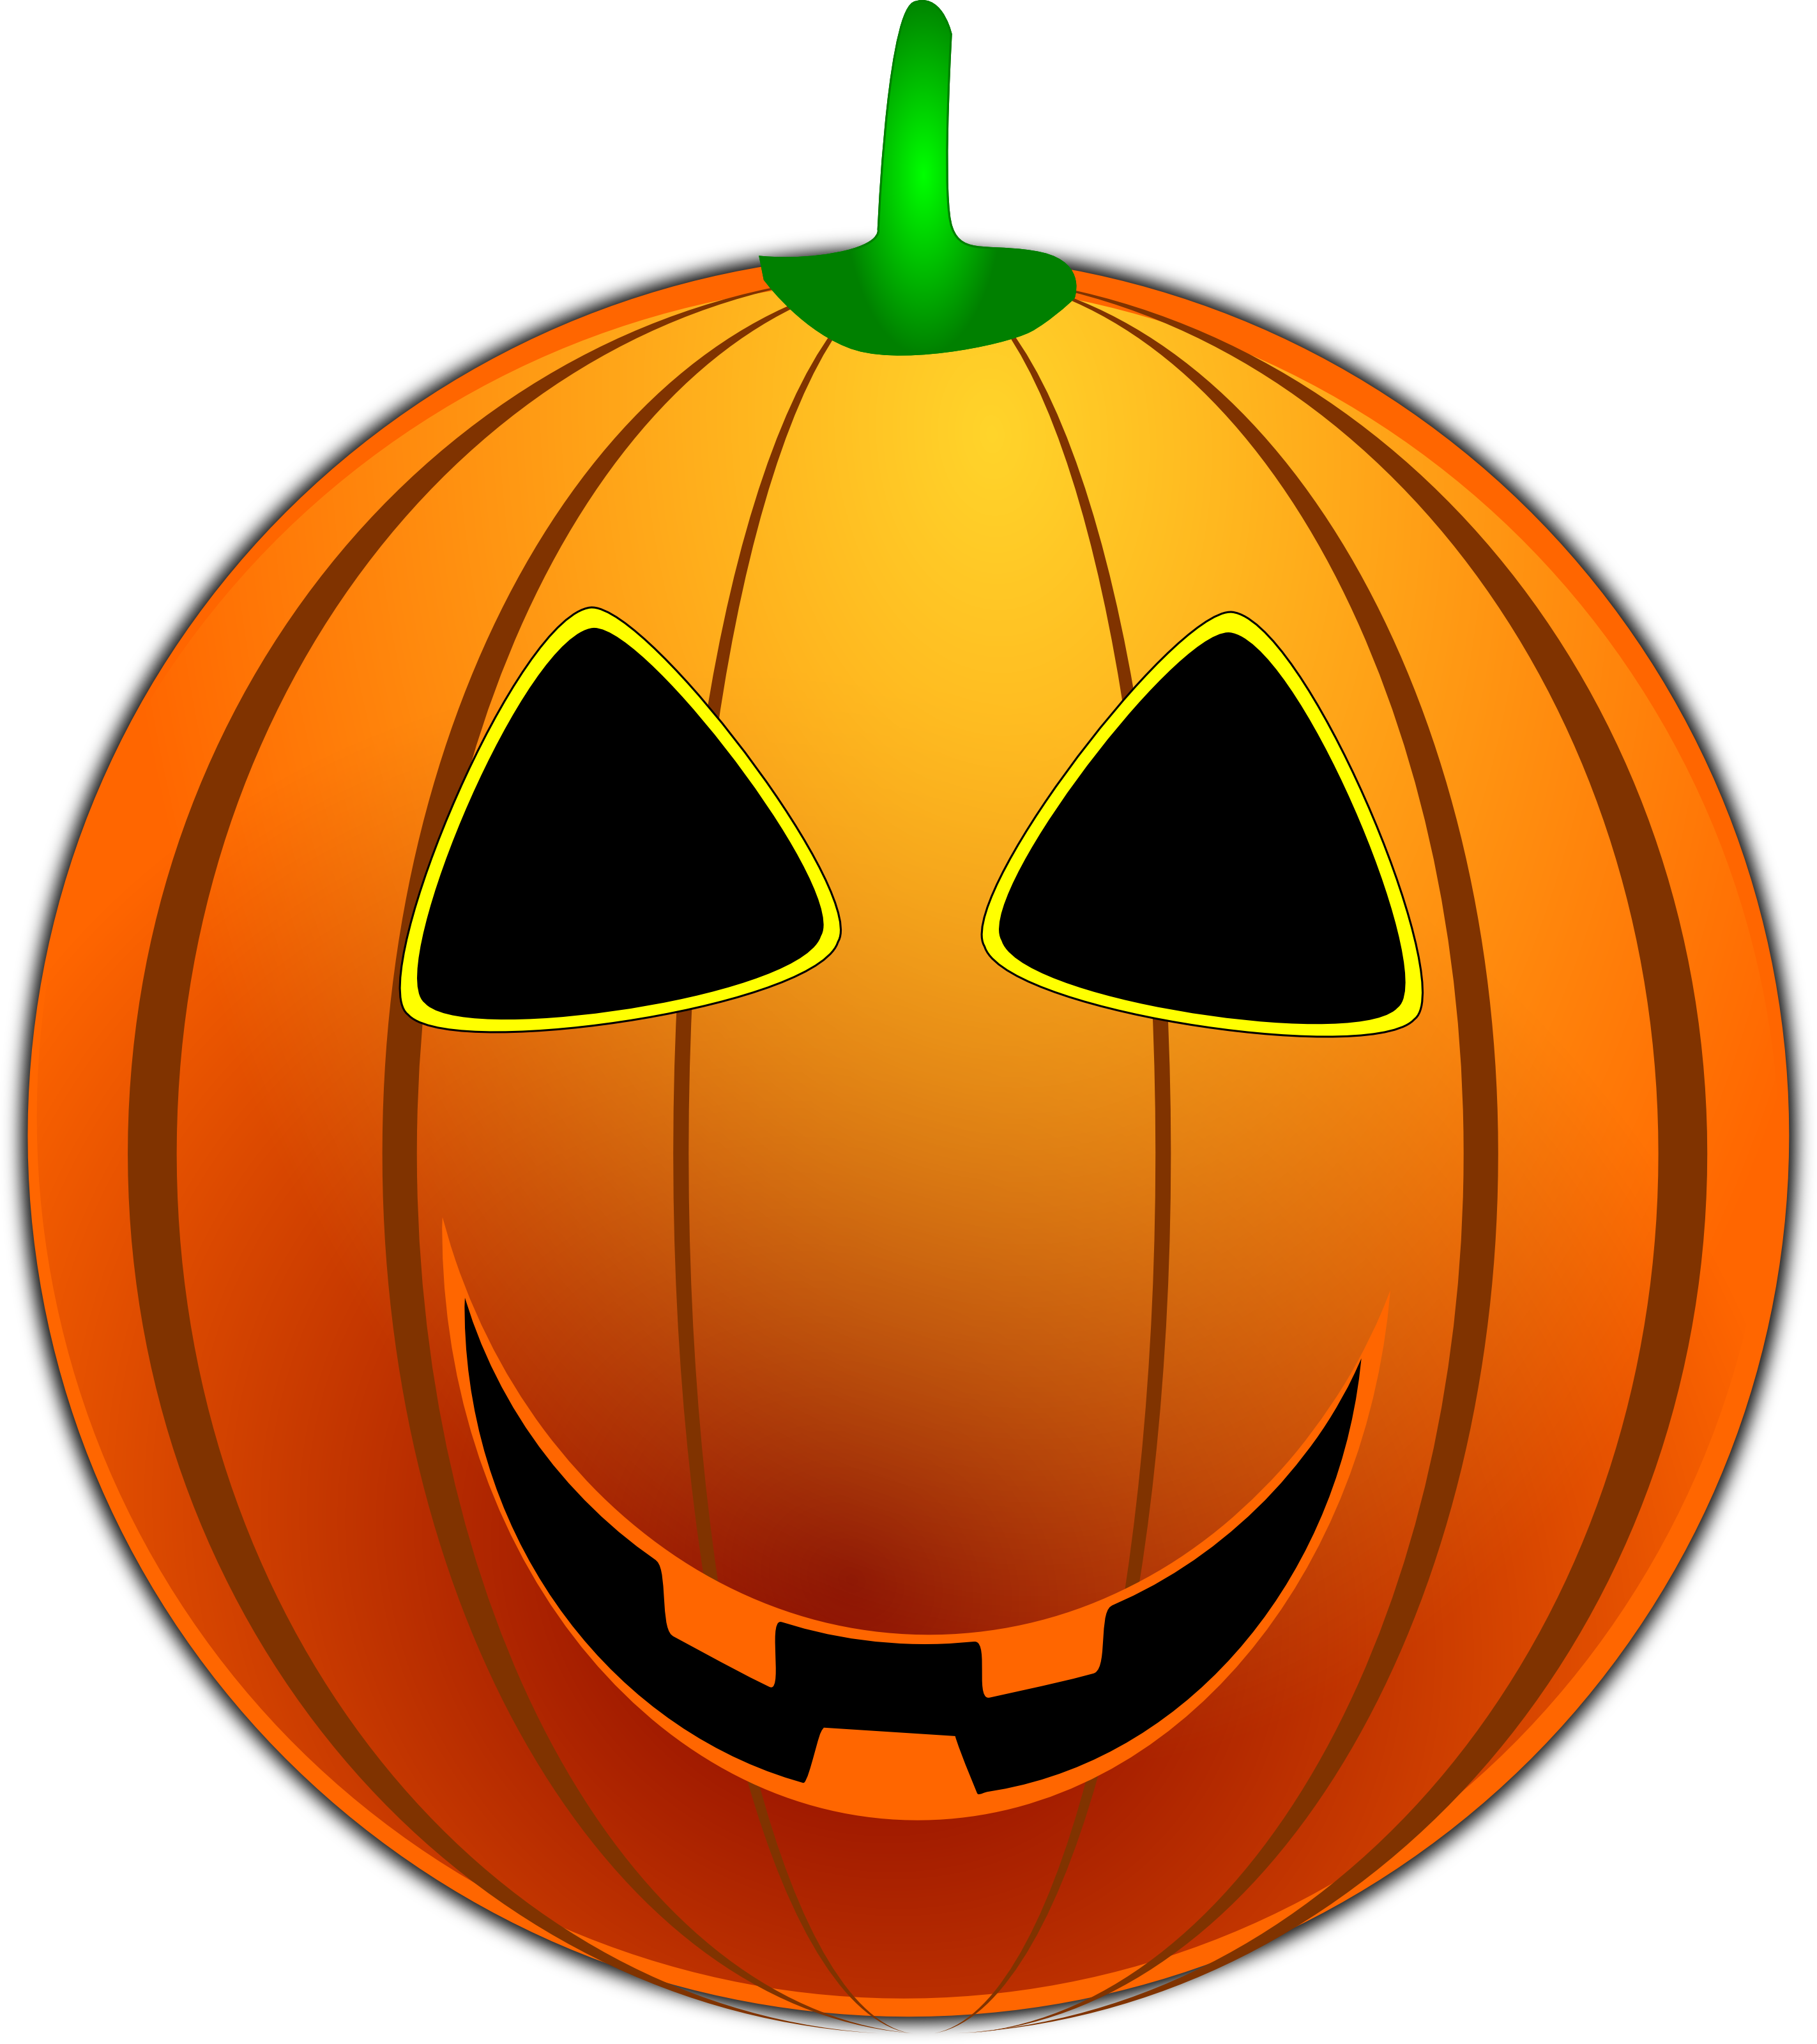 Free vector graphic of a toothy halloween jackolantern emoticon face